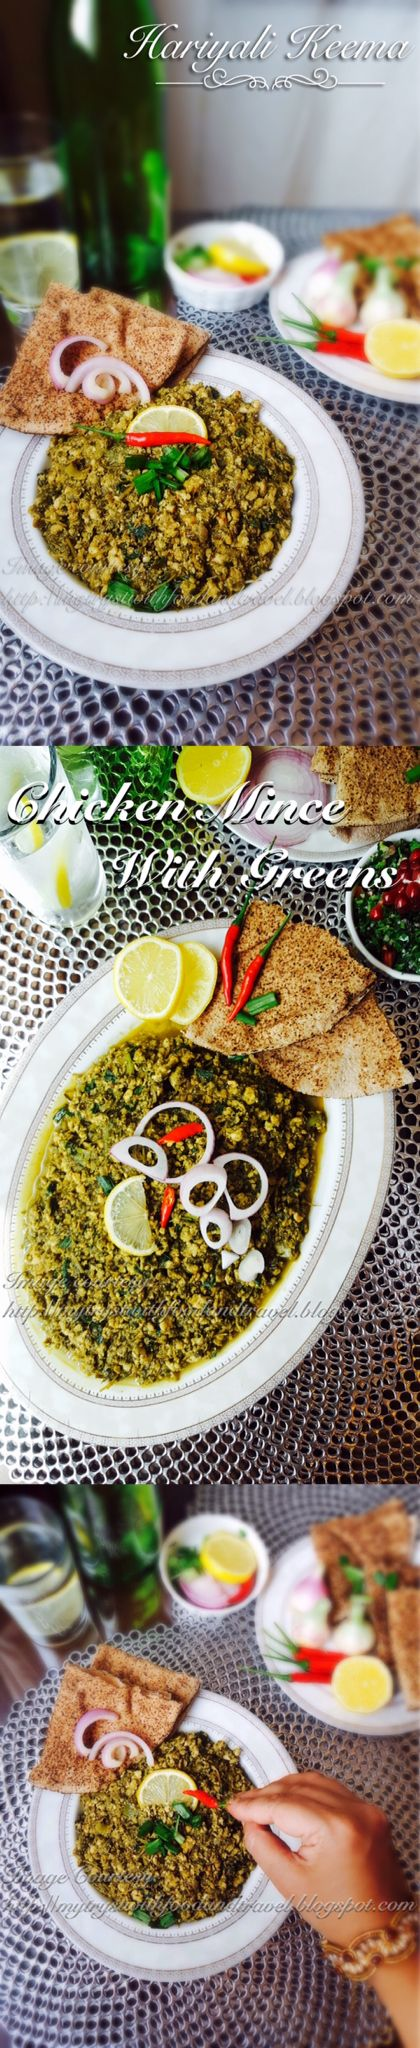 Hariyali Keema or green chicken mince curry is a delicious way of adding the goodness of spinach, dill and methi leaves to your diet.  Recipe link --> http://mytrystwithfoodandtravel.blogspot.ae/2016/07/hariyali-keema-recipe-green-chicken.html A very simple dish with not much preparation required. You can make this dish whenever you want a protein rich diet or simply when you want to make your fussy little eater eat greens.